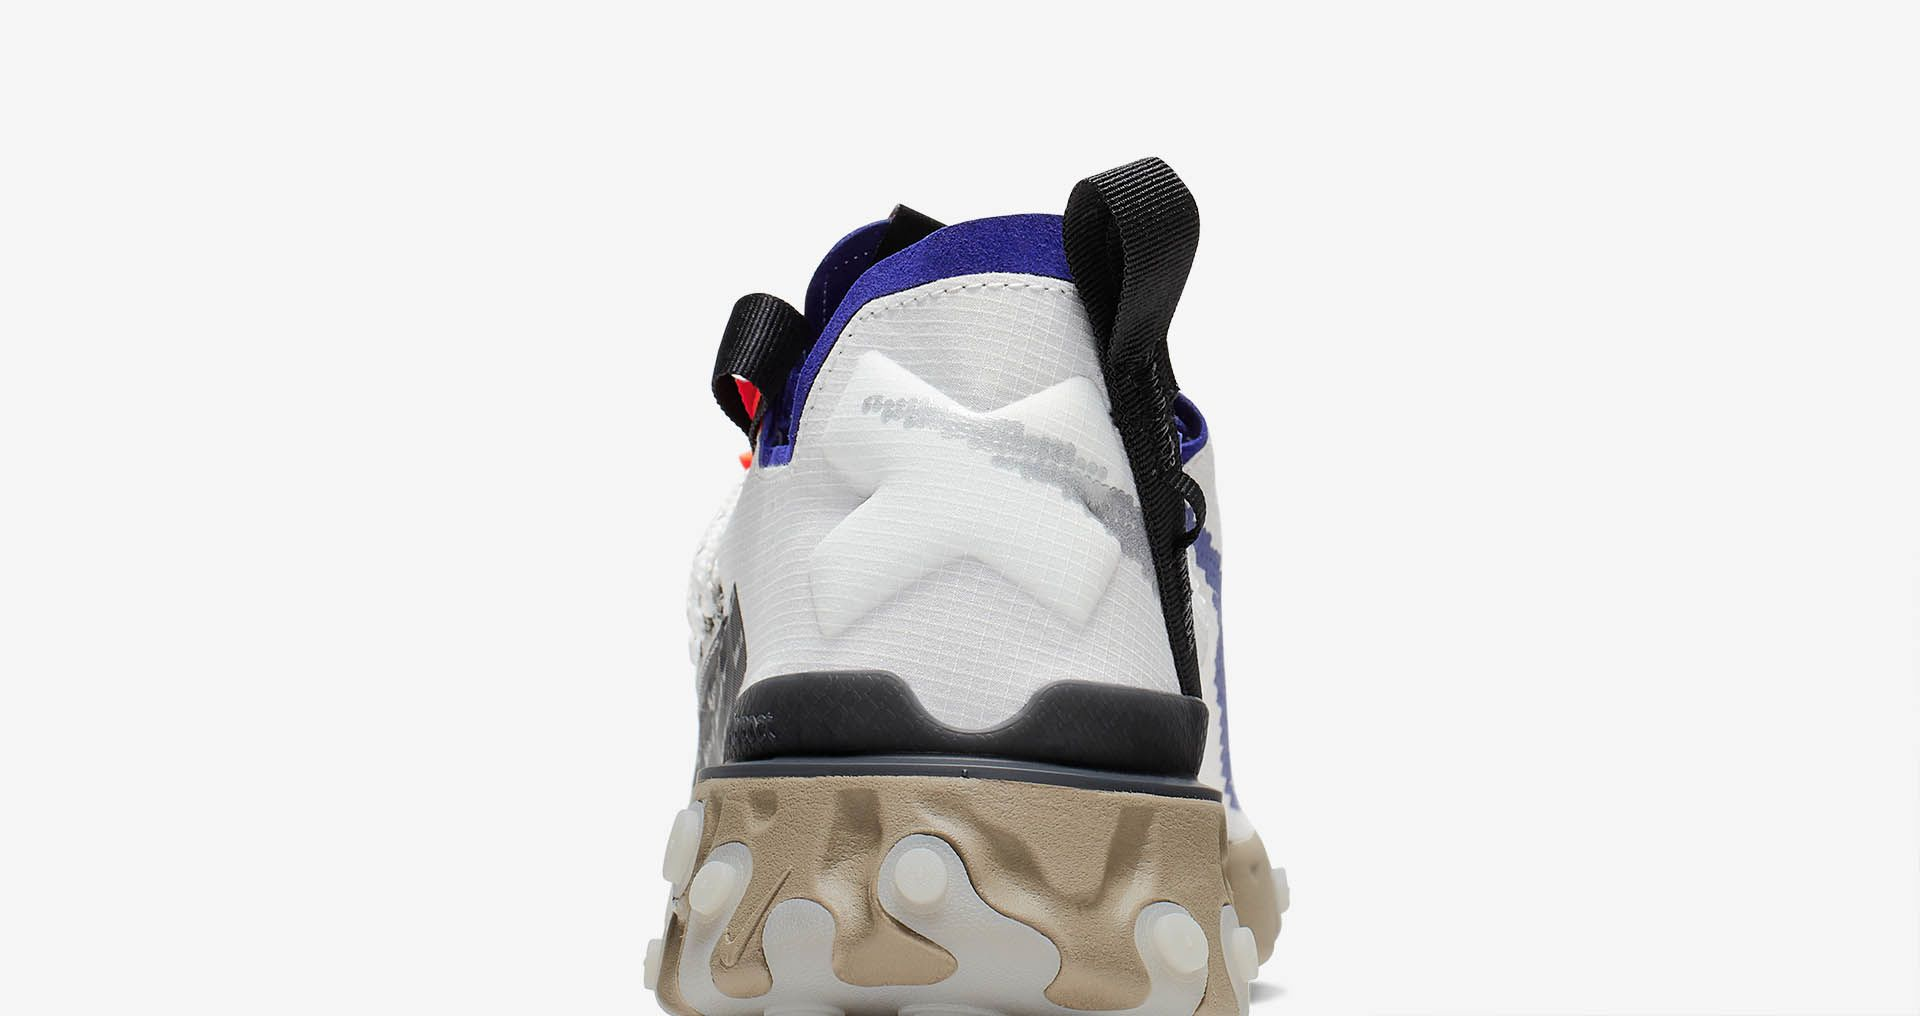 Nike React Runner WR ISPA  Summit White and Deep Royal Blue and ... 3c8d7a20a